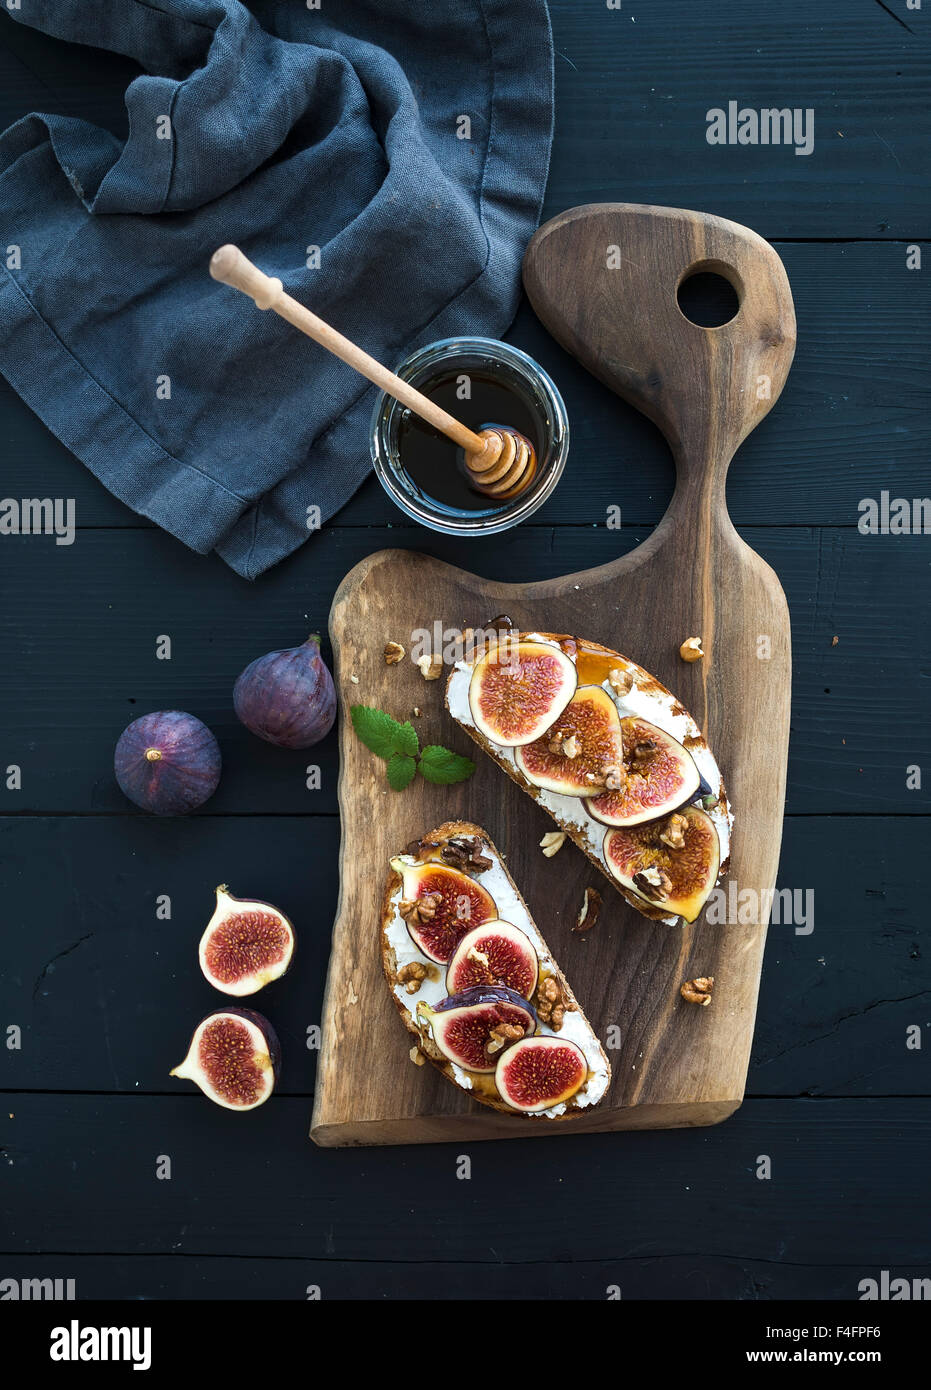 Sandwiches with ricotta, fresh figs, walnuts and honey on rustic wooden board over black backdrop, top view - Stock Image